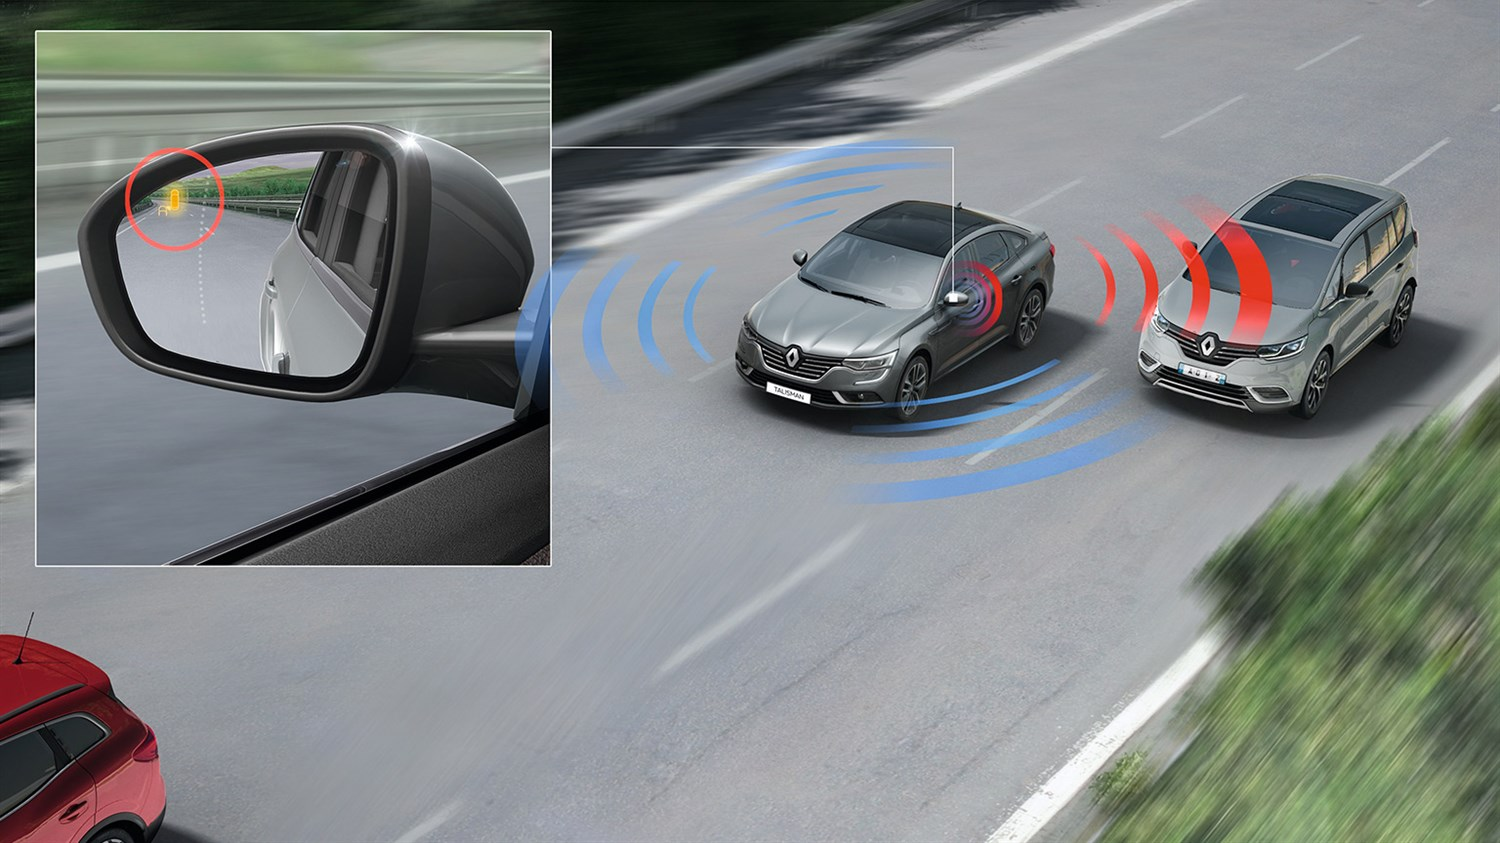 Renault TALISMAN advanced driver assistance systems warn and inform you in real time to maximise your safety.